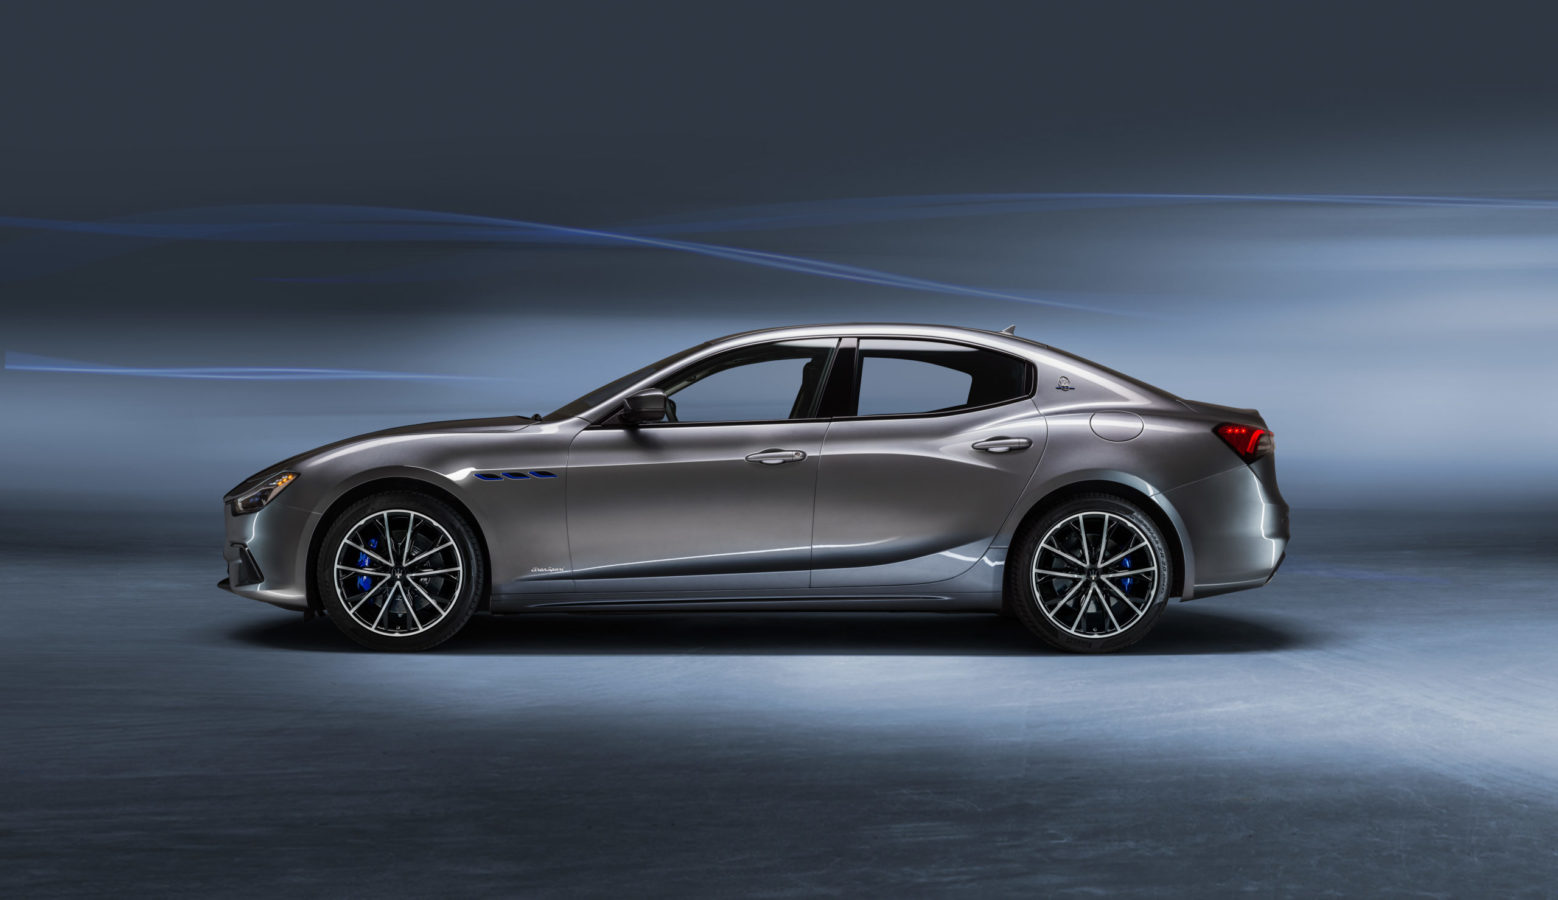 Maserati scraps diesel for a mildly hybridised engine for a facelifted Ghibli